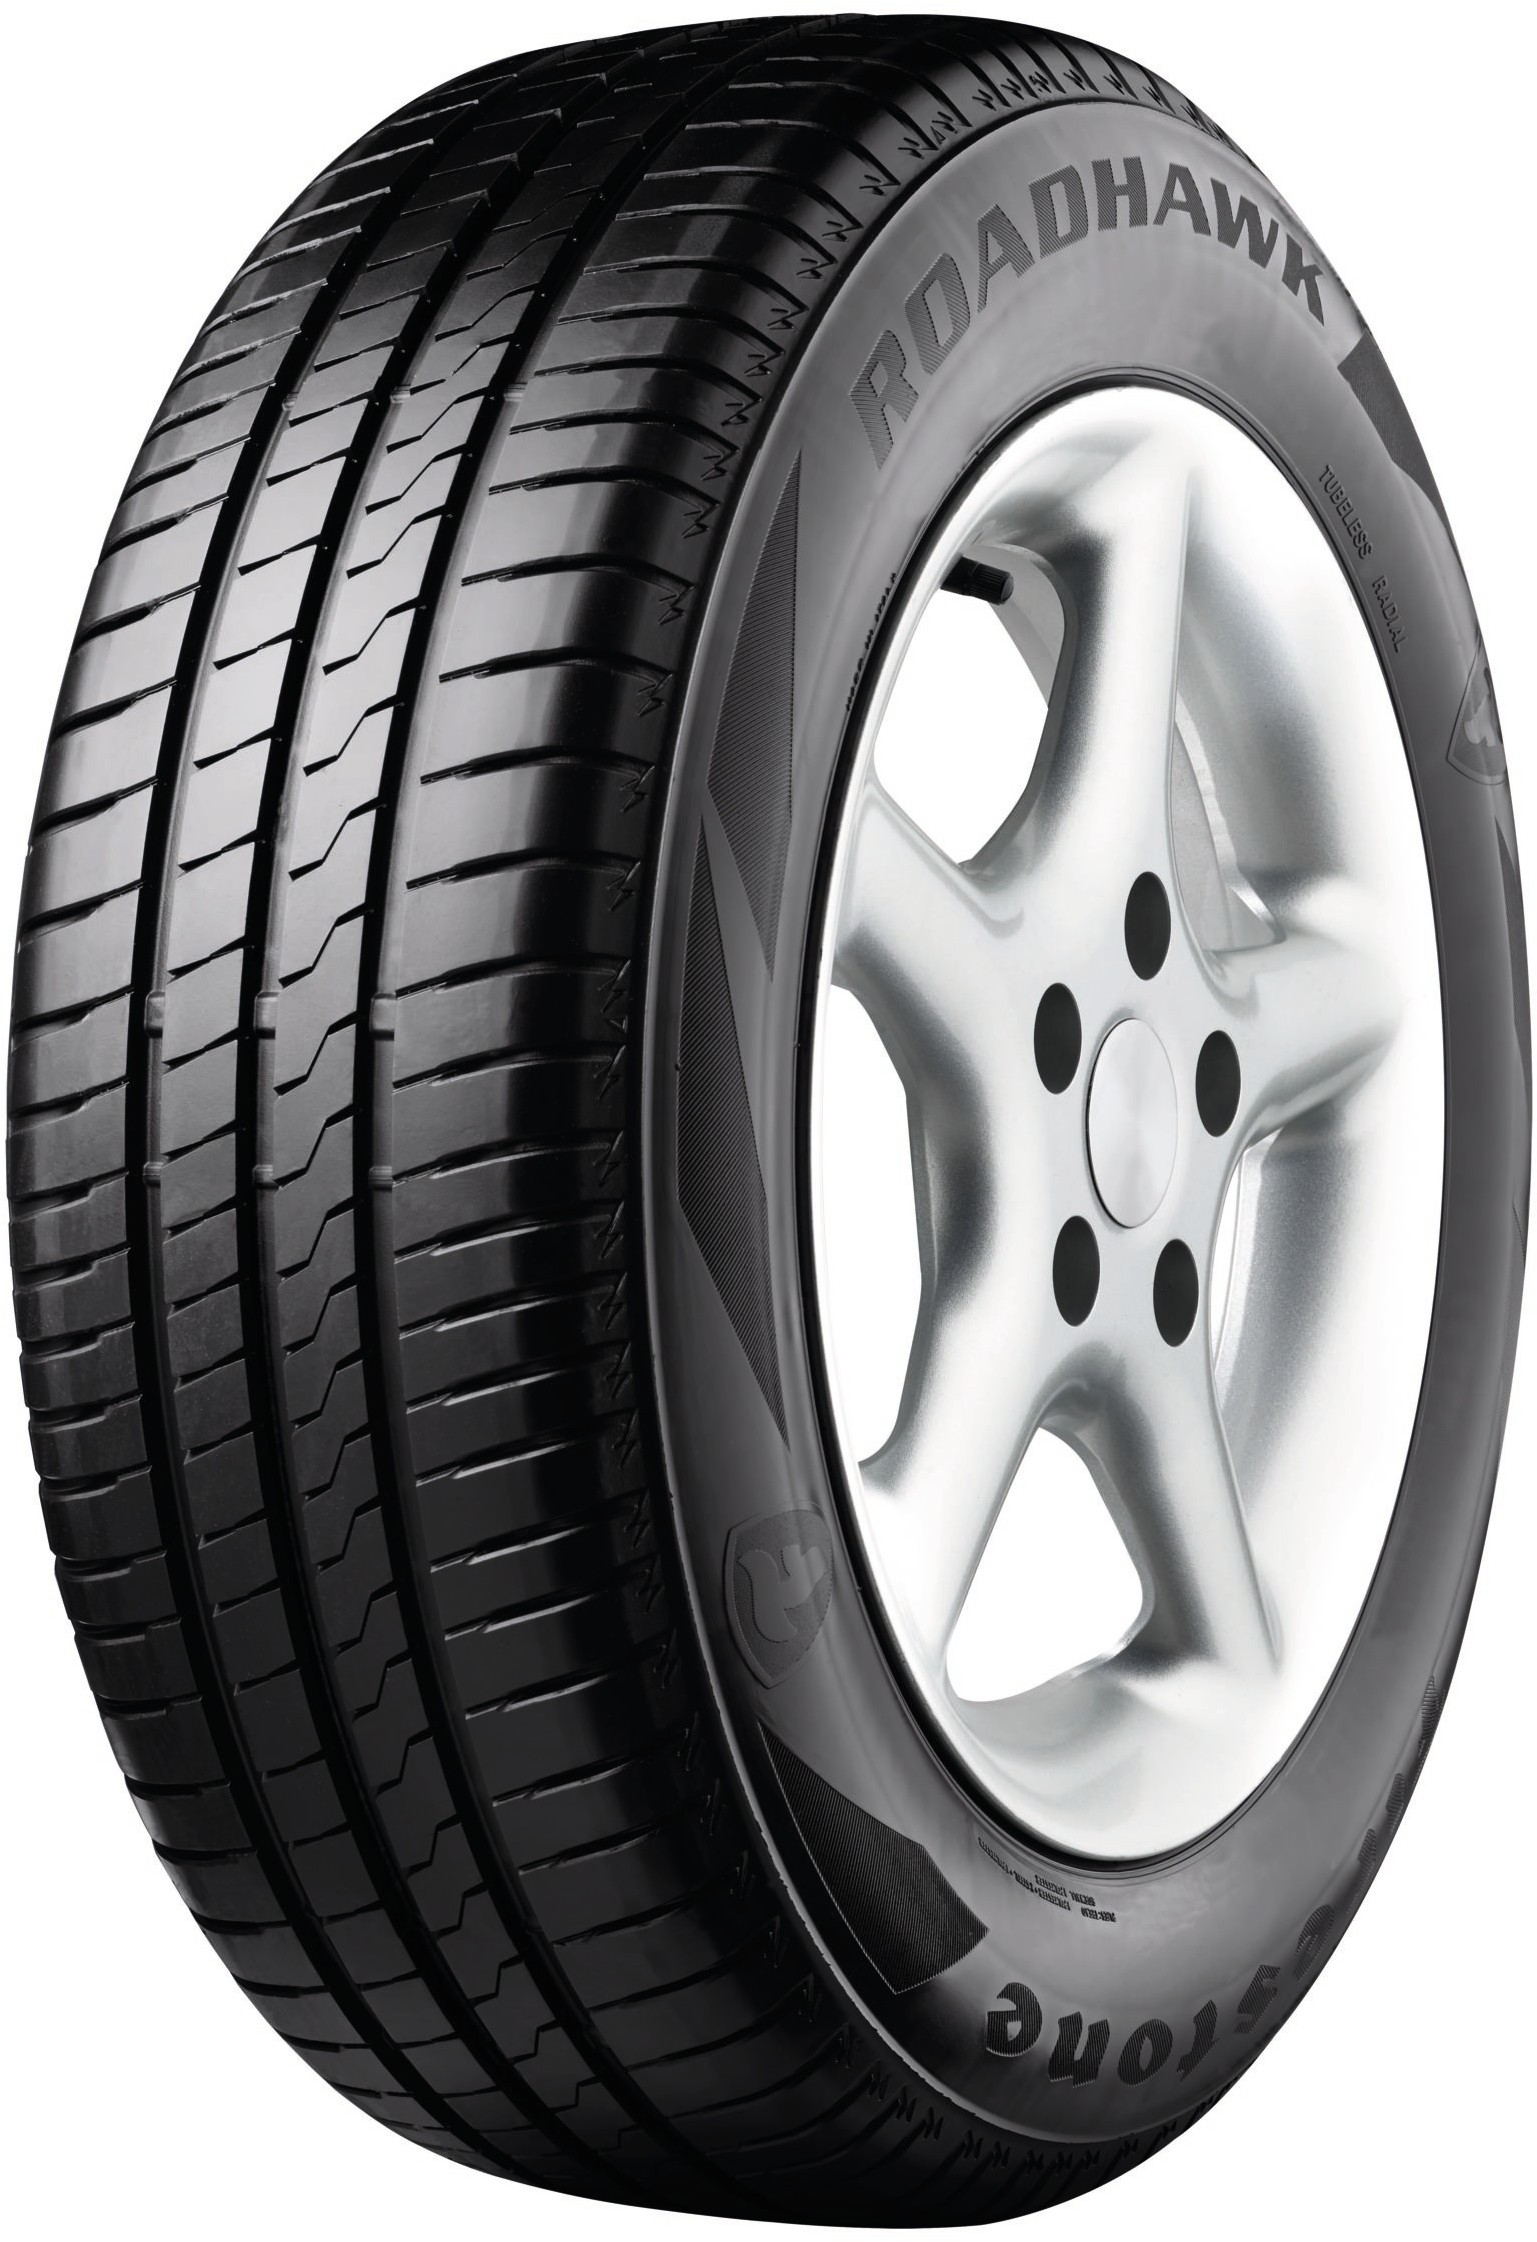 Firestone Roadhawk 255/45R20 105W